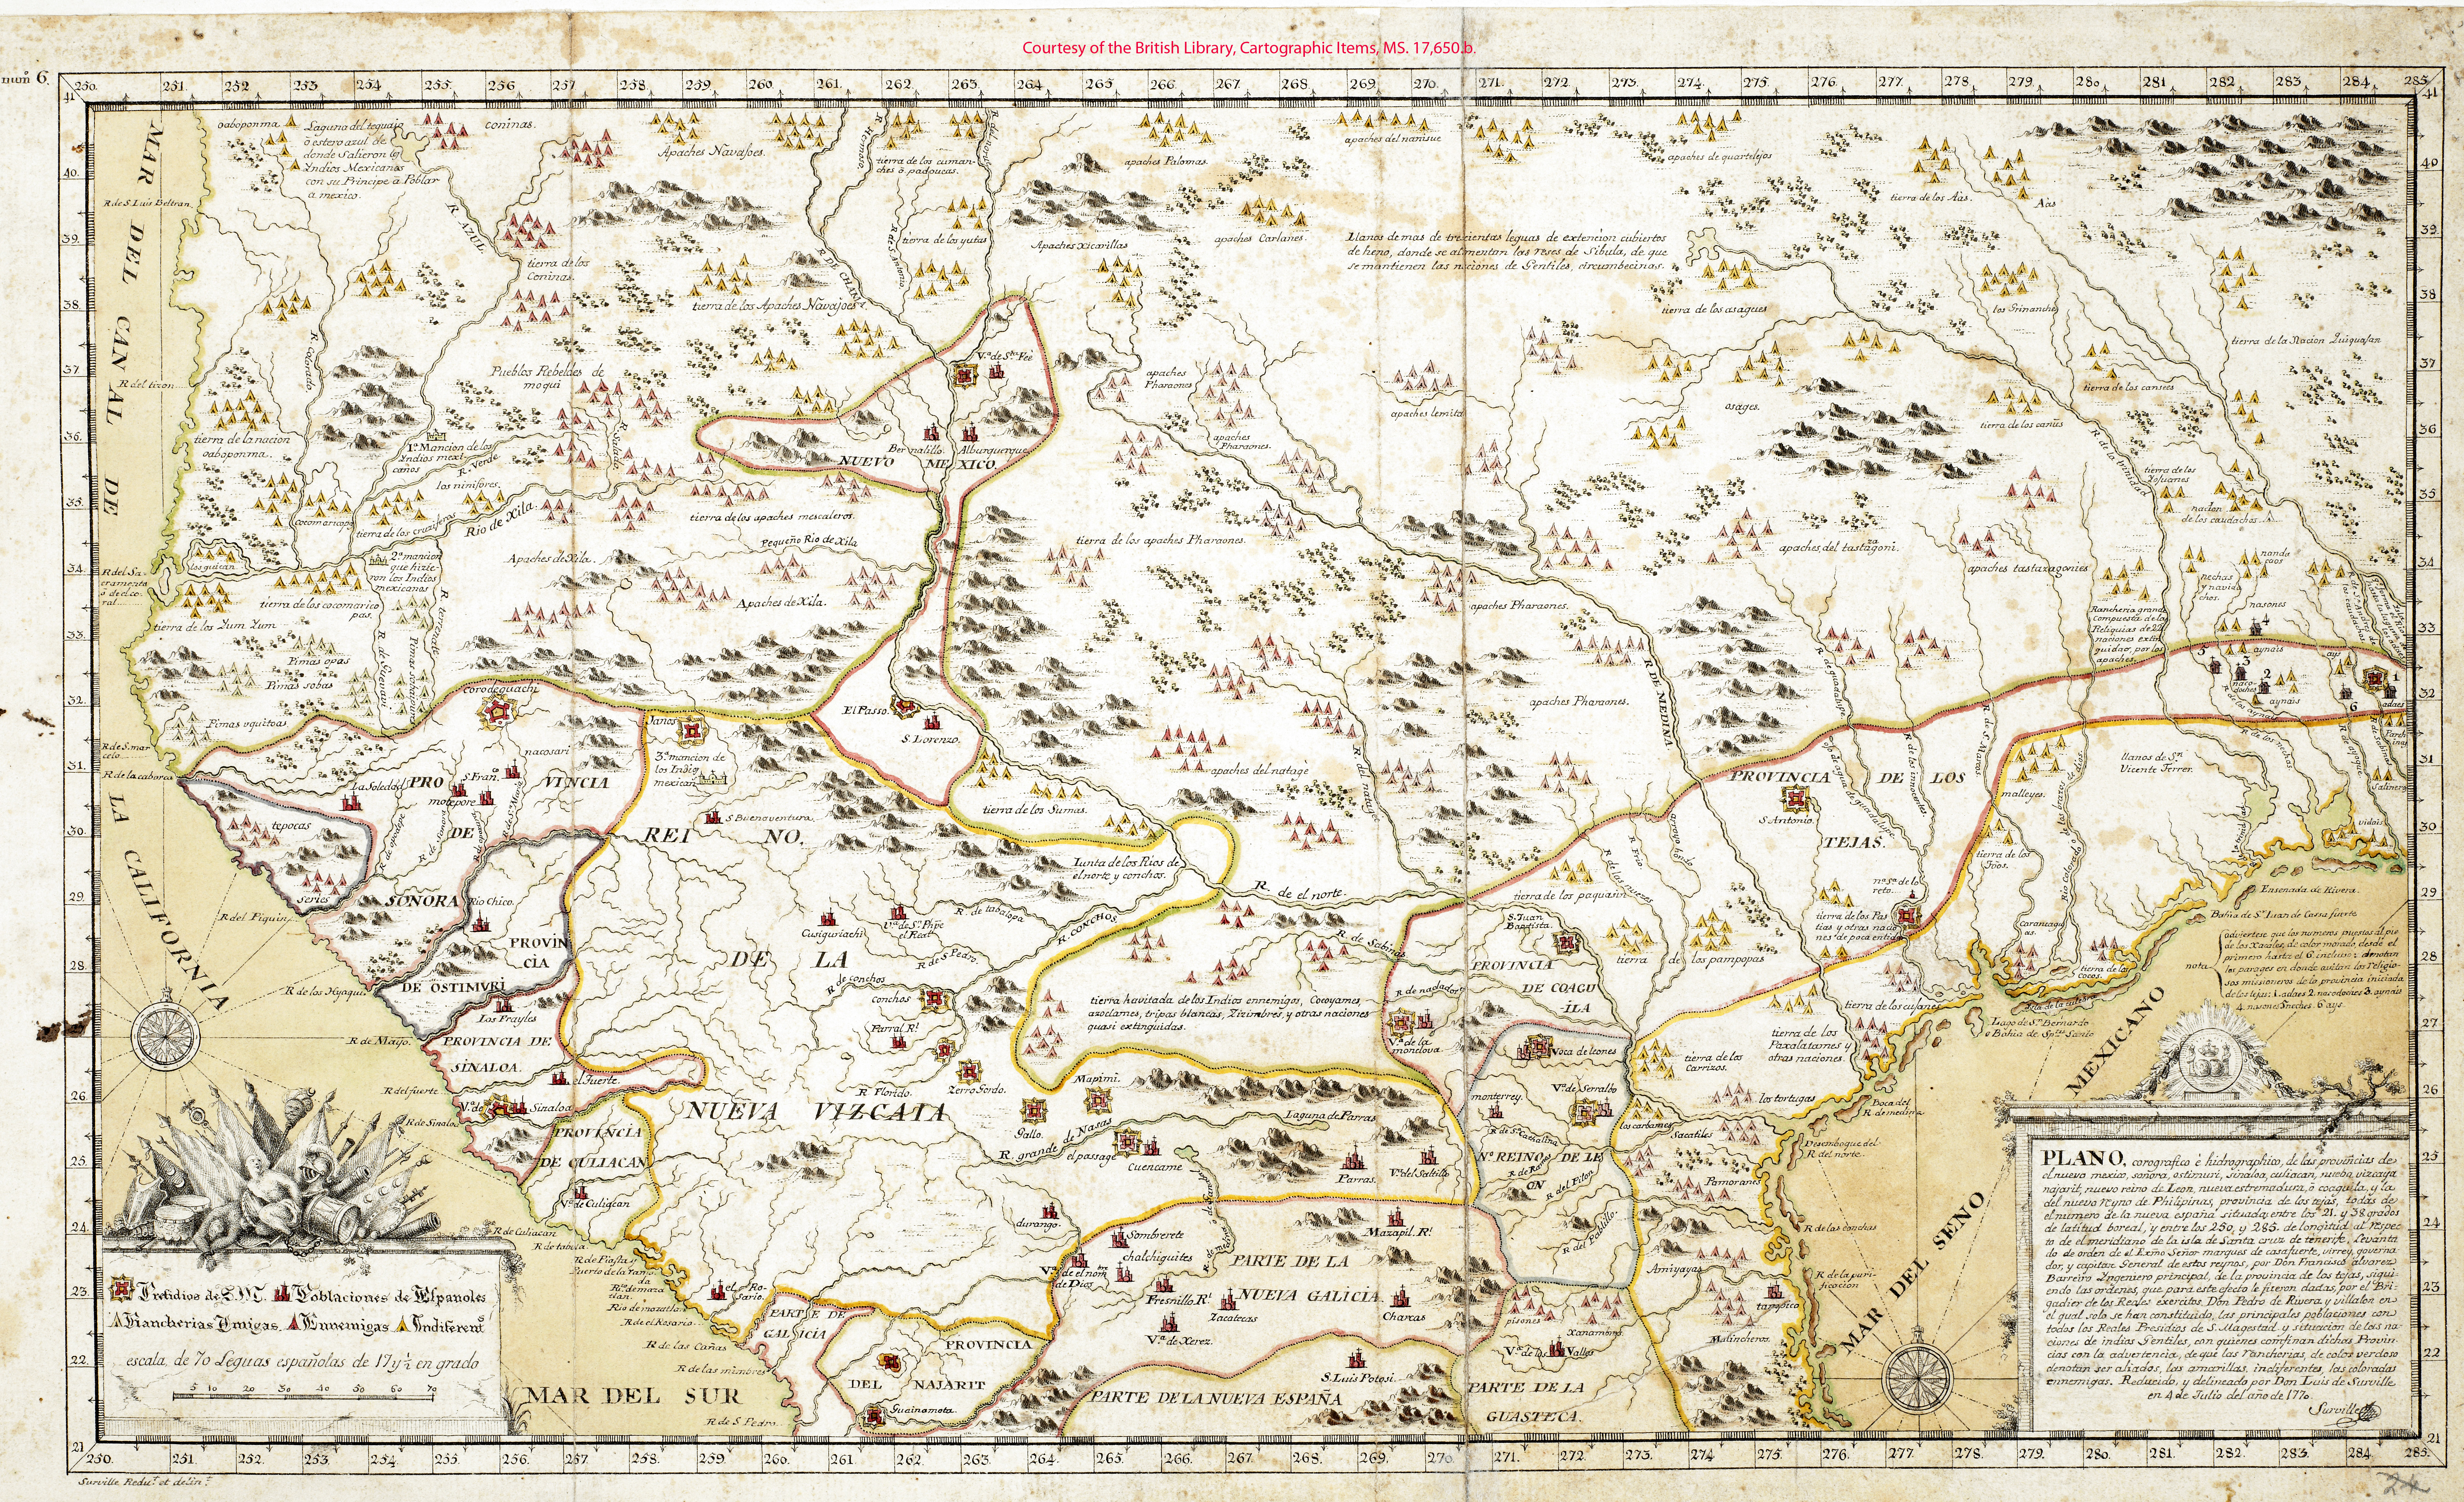 Imagining Texas: An Historical Journey With Maps | The ... on map of rumbek, map of wu, map of siu, map of chicago,